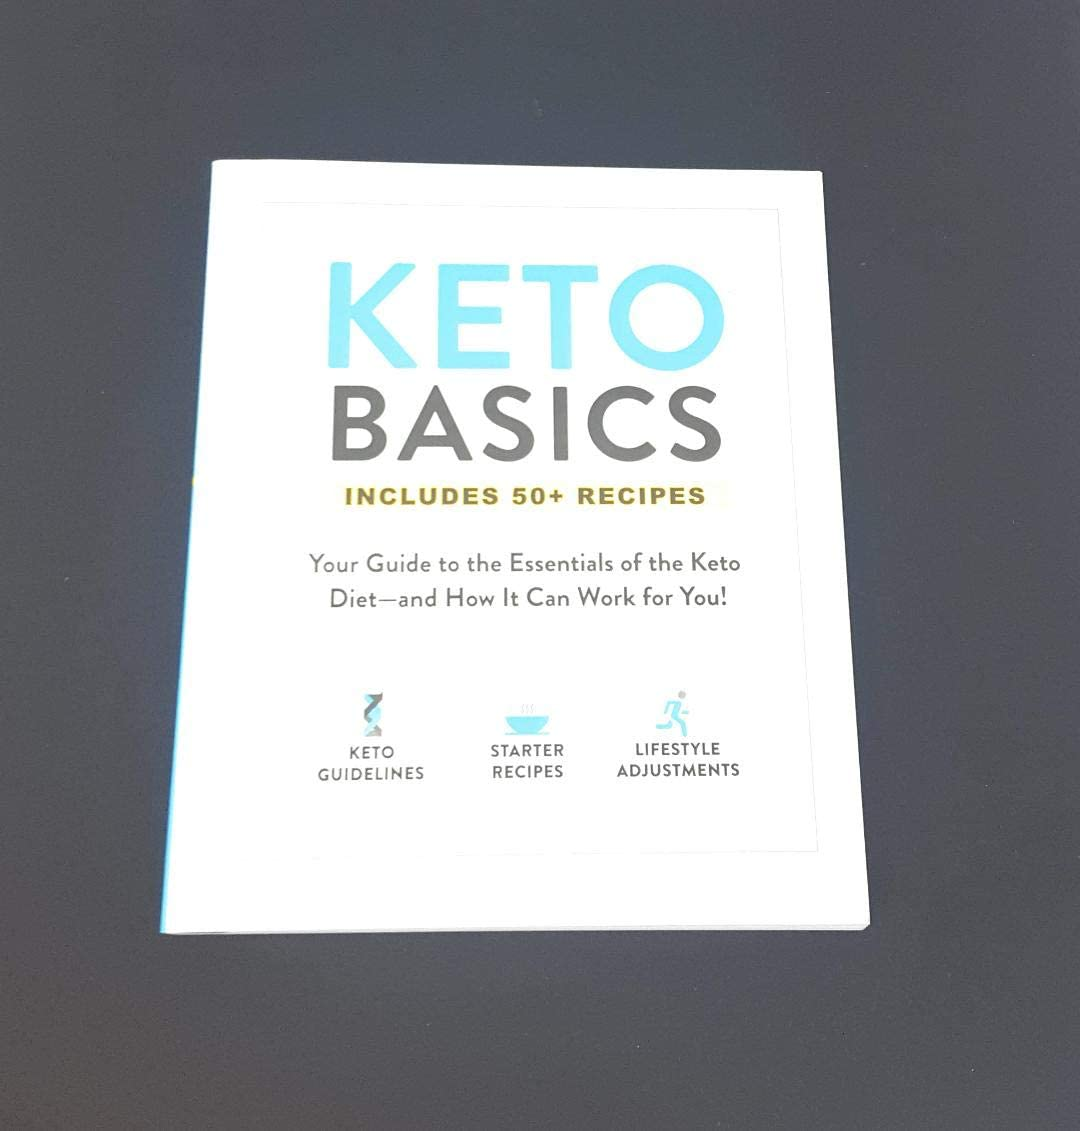 Several Keto Basic Tool Kit: Joie Spiralizer and Keto Basics: Your Guide to The Essentials of The Keto Diet―and How It Can Work for You! 1 1